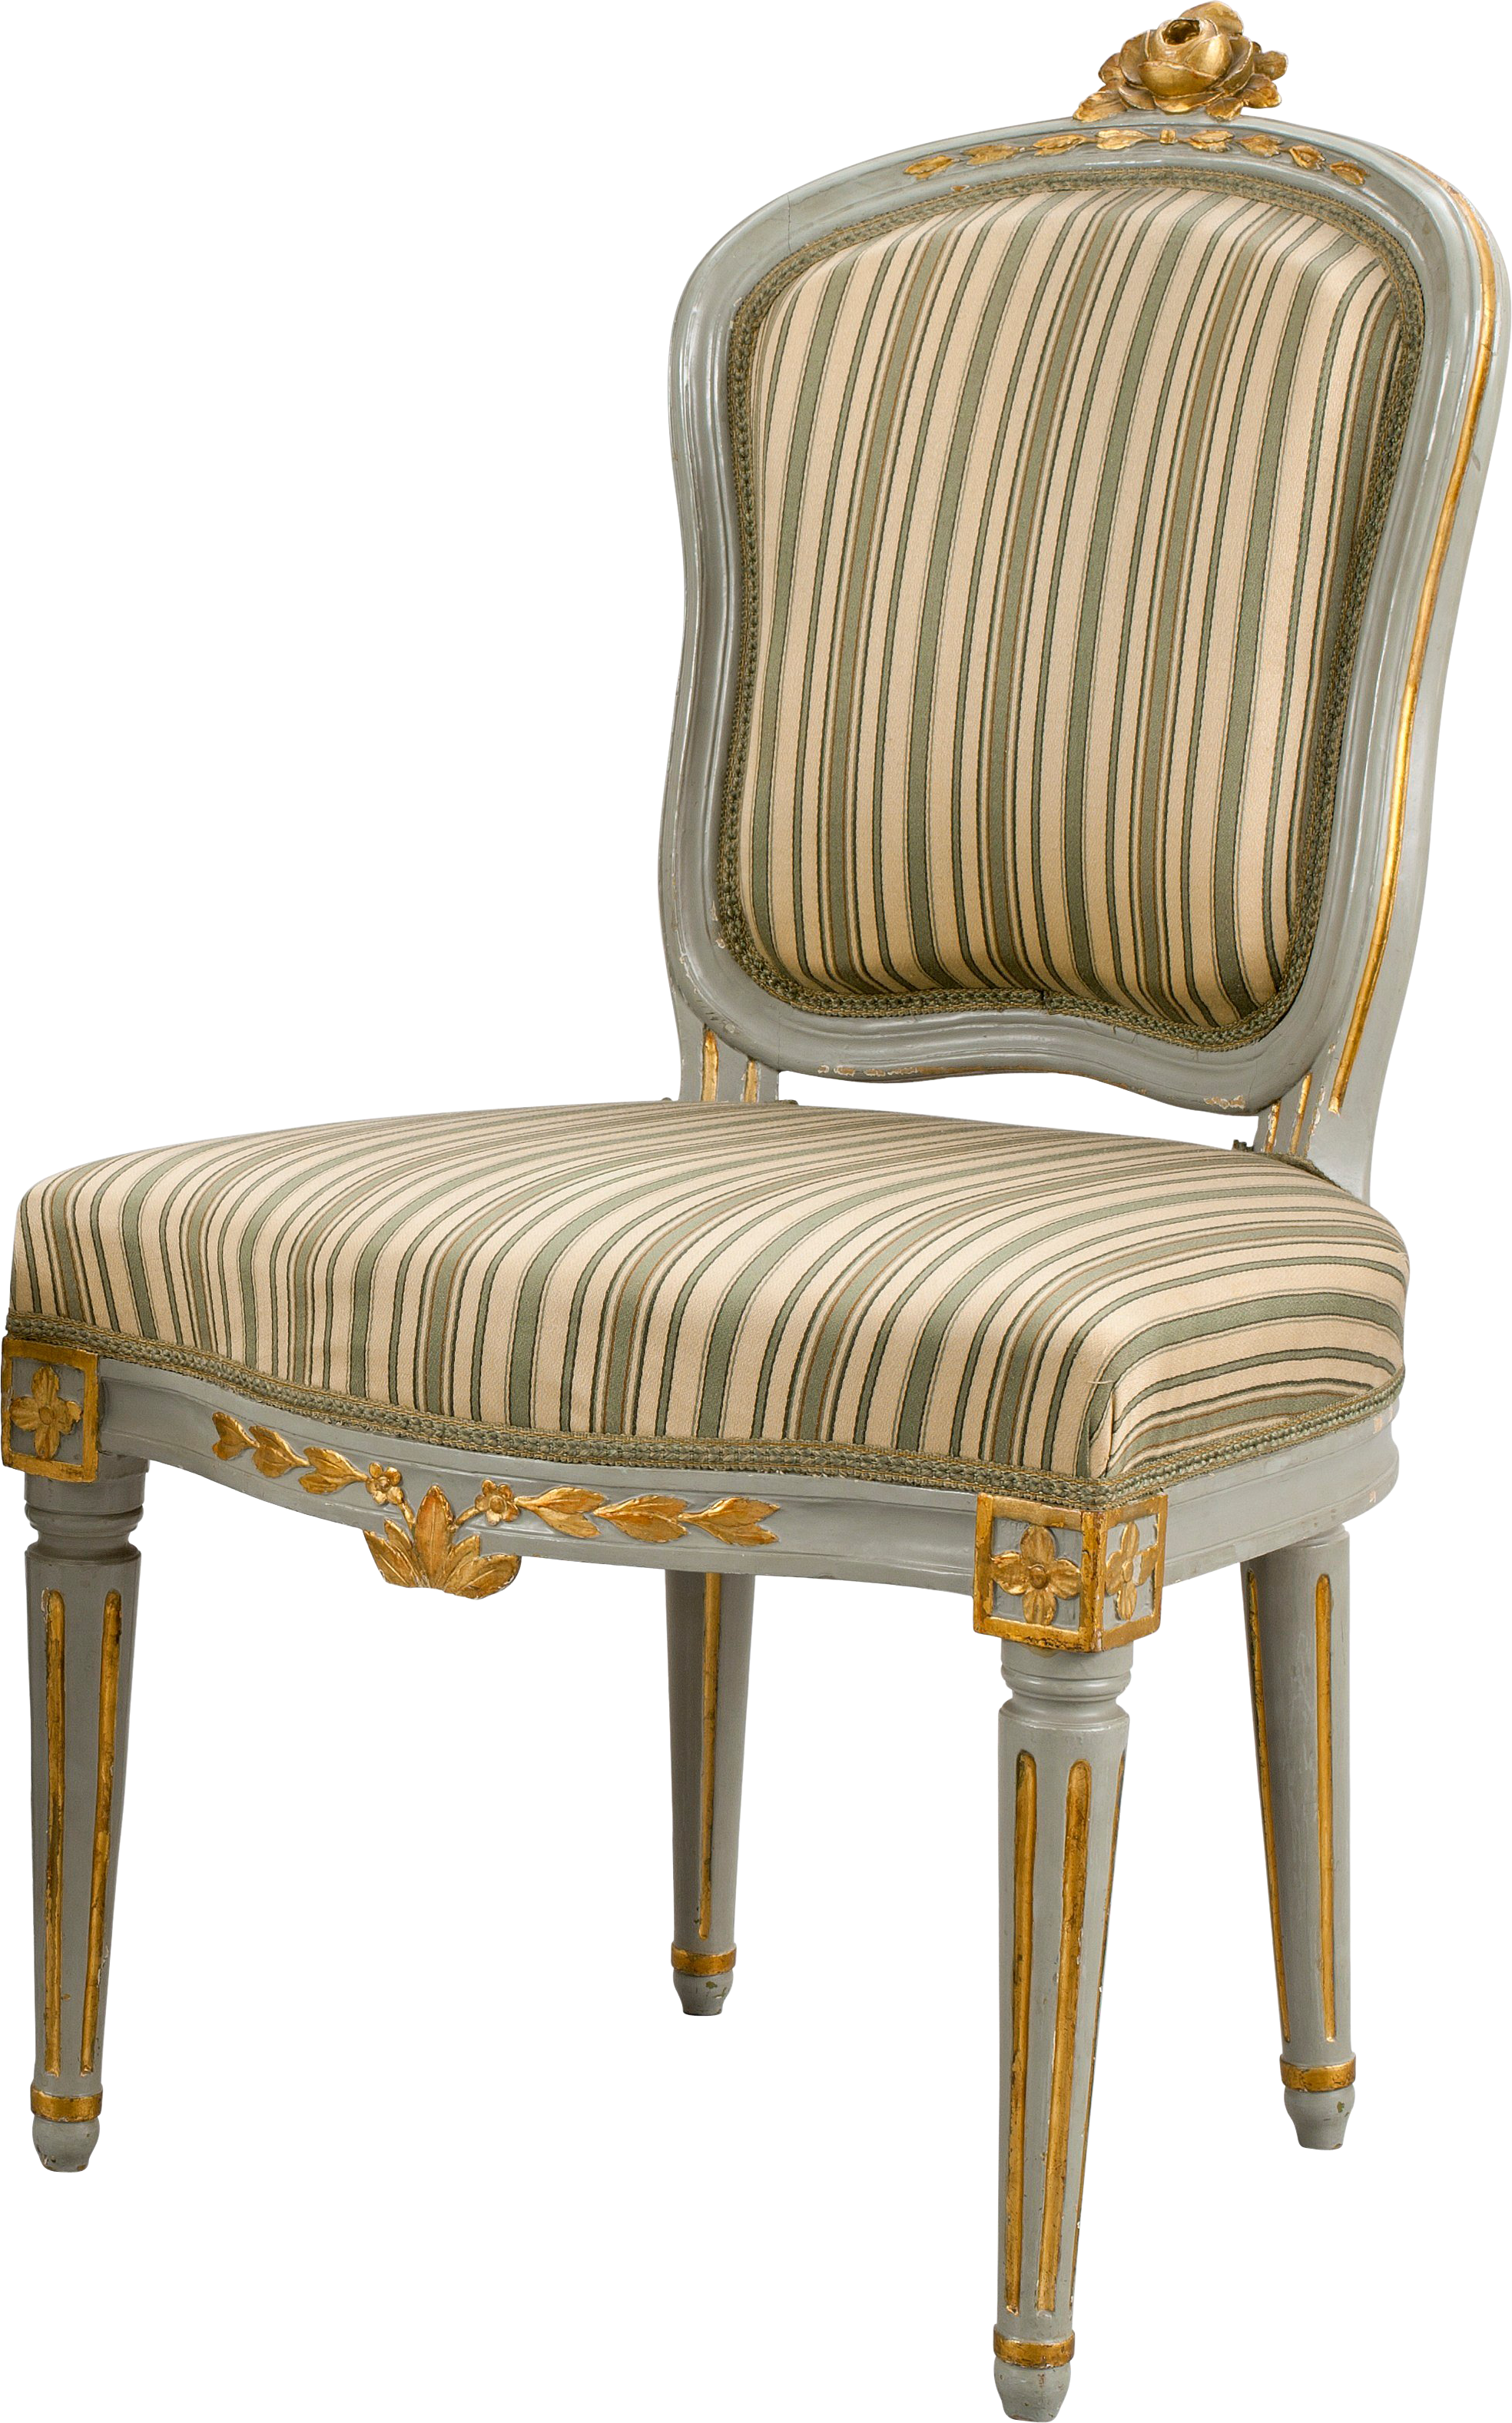 vector free stock Sofa clipart maharaja. Chair png images free